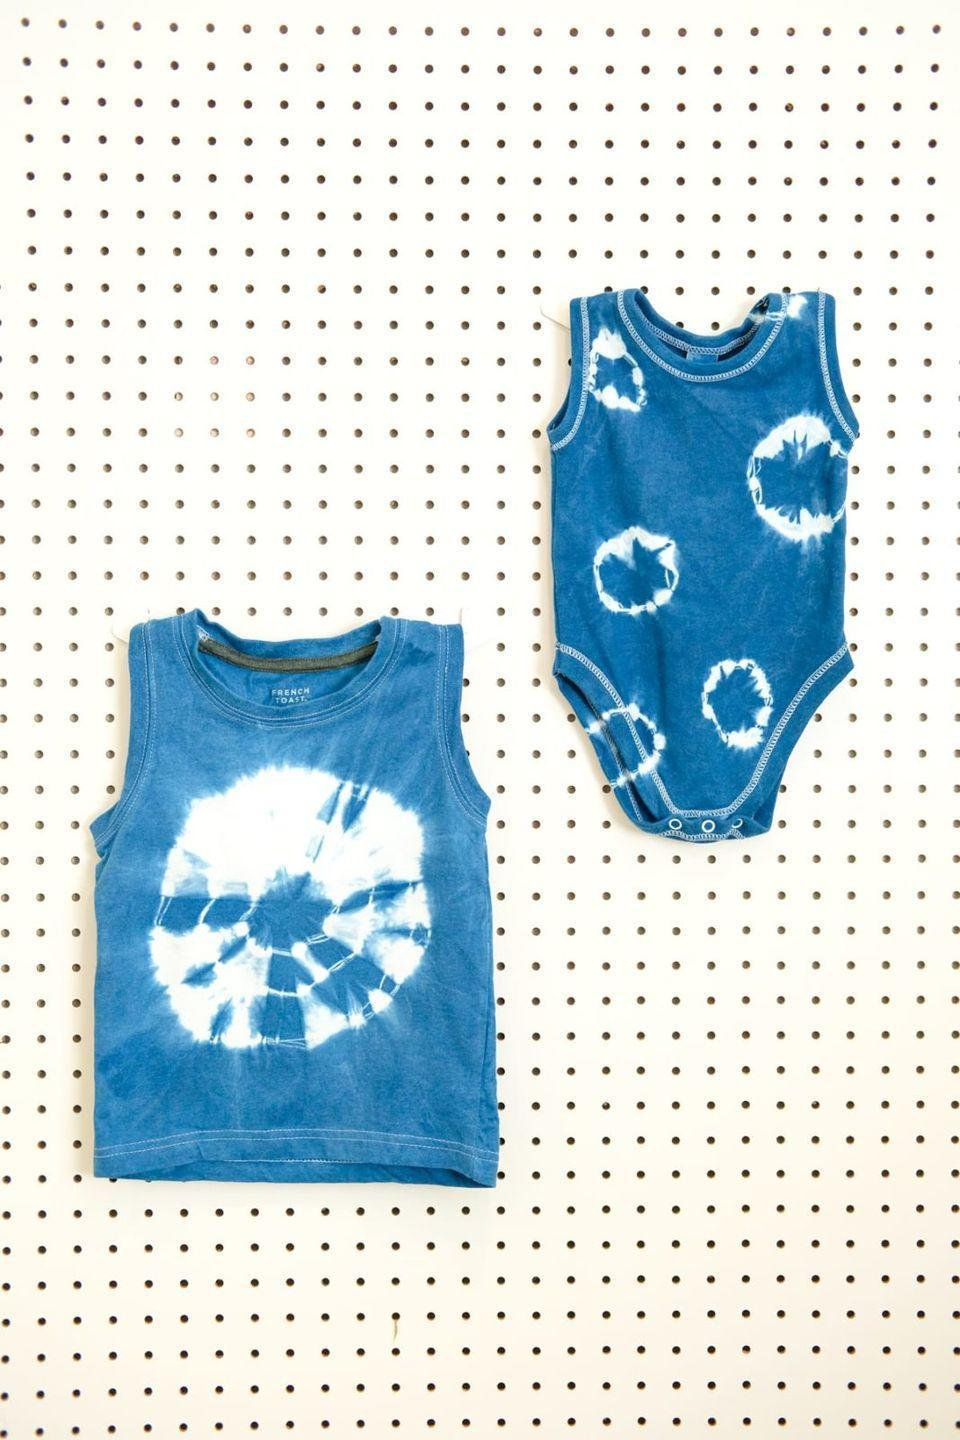 """<p>Instead of playing games, get crafty with a DIY tie-dye station. Just be sure to have some smocks and gloves around to prevent dye from staining hands and clothes. </p><p><a class=""""link rapid-noclick-resp"""" href=""""https://lovelyindeed.com/diy-shibori-dyed-kids-clothes/"""" rel=""""nofollow noopener"""" target=""""_blank"""" data-ylk=""""slk:GET THE TUTORIAL"""">GET THE TUTORIAL</a></p><p><a class=""""link rapid-noclick-resp"""" href=""""https://www.amazon.com/Rit-Dye-Liquid-Fabric-8-Ounce/dp/B002766FGI/ref=sxts_sxwds-bia-wc-p13n2_0?cv_ct_cx=rit+dye&dchild=1&keywords=rit+dye&pd_rd_i=B002766FGI&pd_rd_r=e14d1ee0-e7f6-4674-9d9e-c2c800f30cb0&pd_rd_w=AZlQO&pd_rd_wg=6k425&pf_rd_p=1da5beeb-8f71-435c-b5c5-3279a6171294&pf_rd_r=V9D4NYSZEBEVAAR3HDB6&psc=1&qid=1591664893&sr=1-2-70f7c15d-07d8-466a-b325-4be35d7258cc&tag=syn-yahoo-20&ascsubtag=%5Bartid%7C10072.g.32715018%5Bsrc%7Cyahoo-us"""" rel=""""nofollow noopener"""" target=""""_blank"""" data-ylk=""""slk:SHOP DYE"""">SHOP DYE</a></p>"""